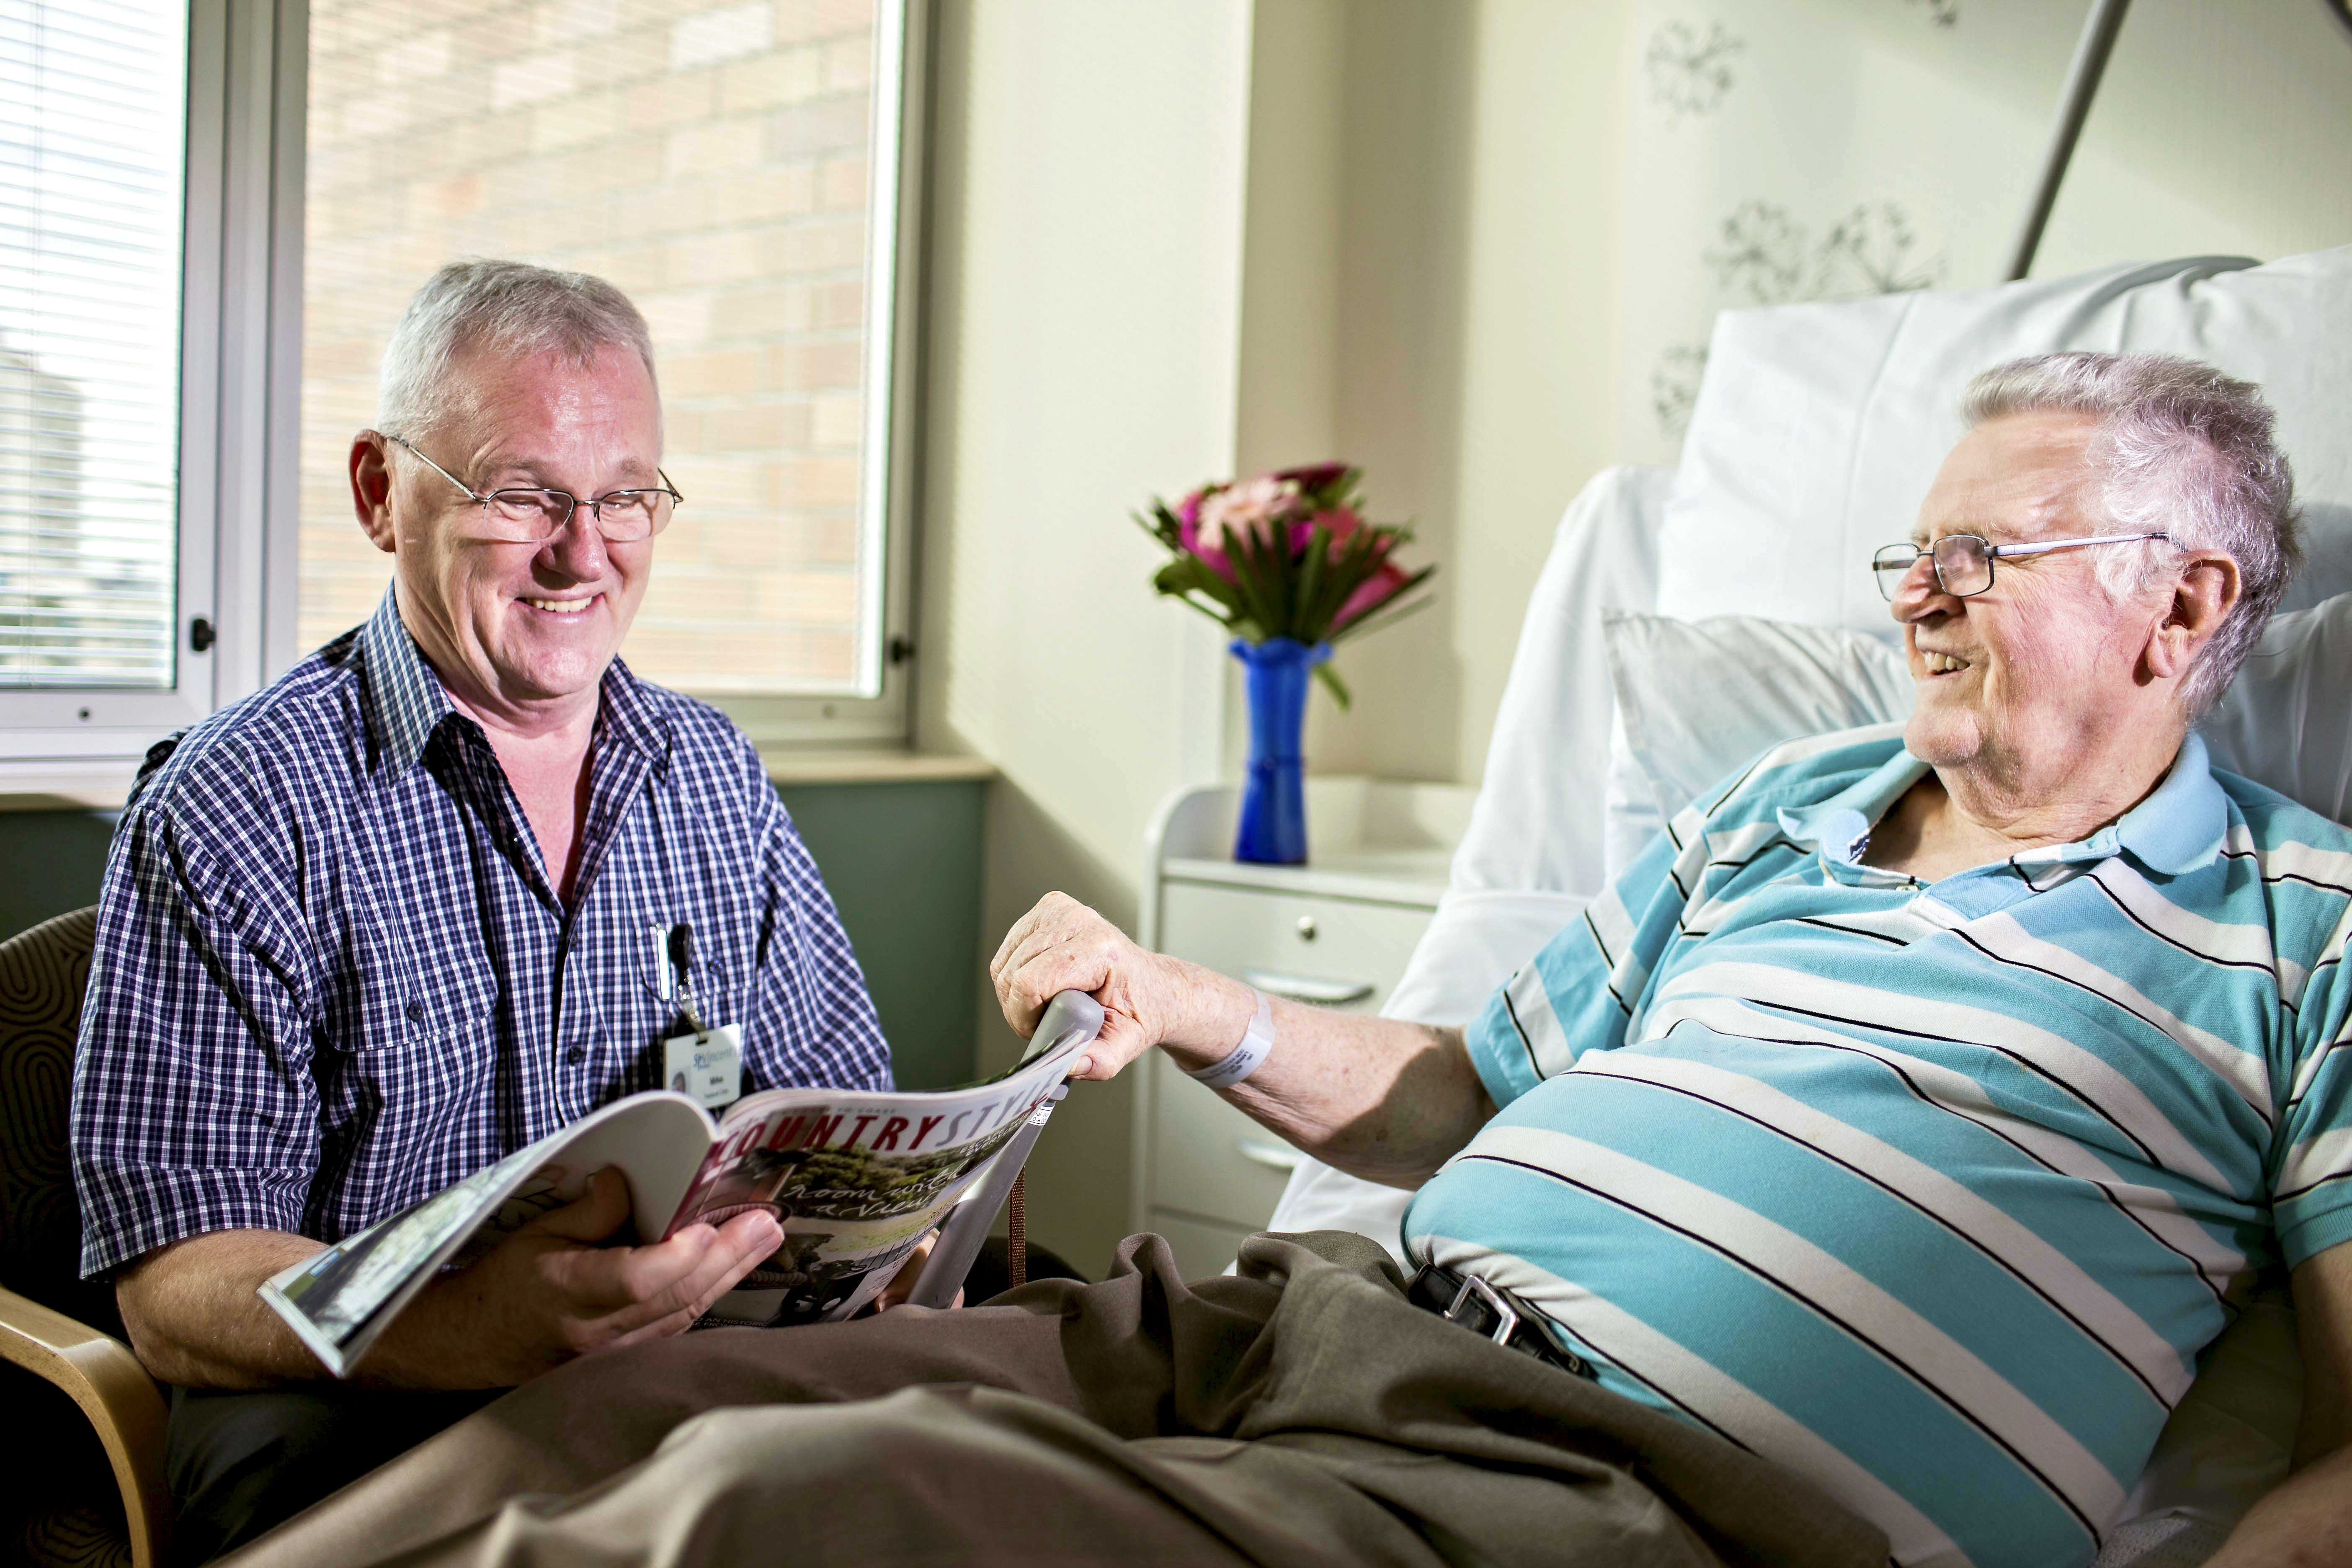 Palliative Care WA has estimated a $100 million funding shortfall in state funding despite the $41 million funding boost from the McGowan Government. Photo: Supplied.